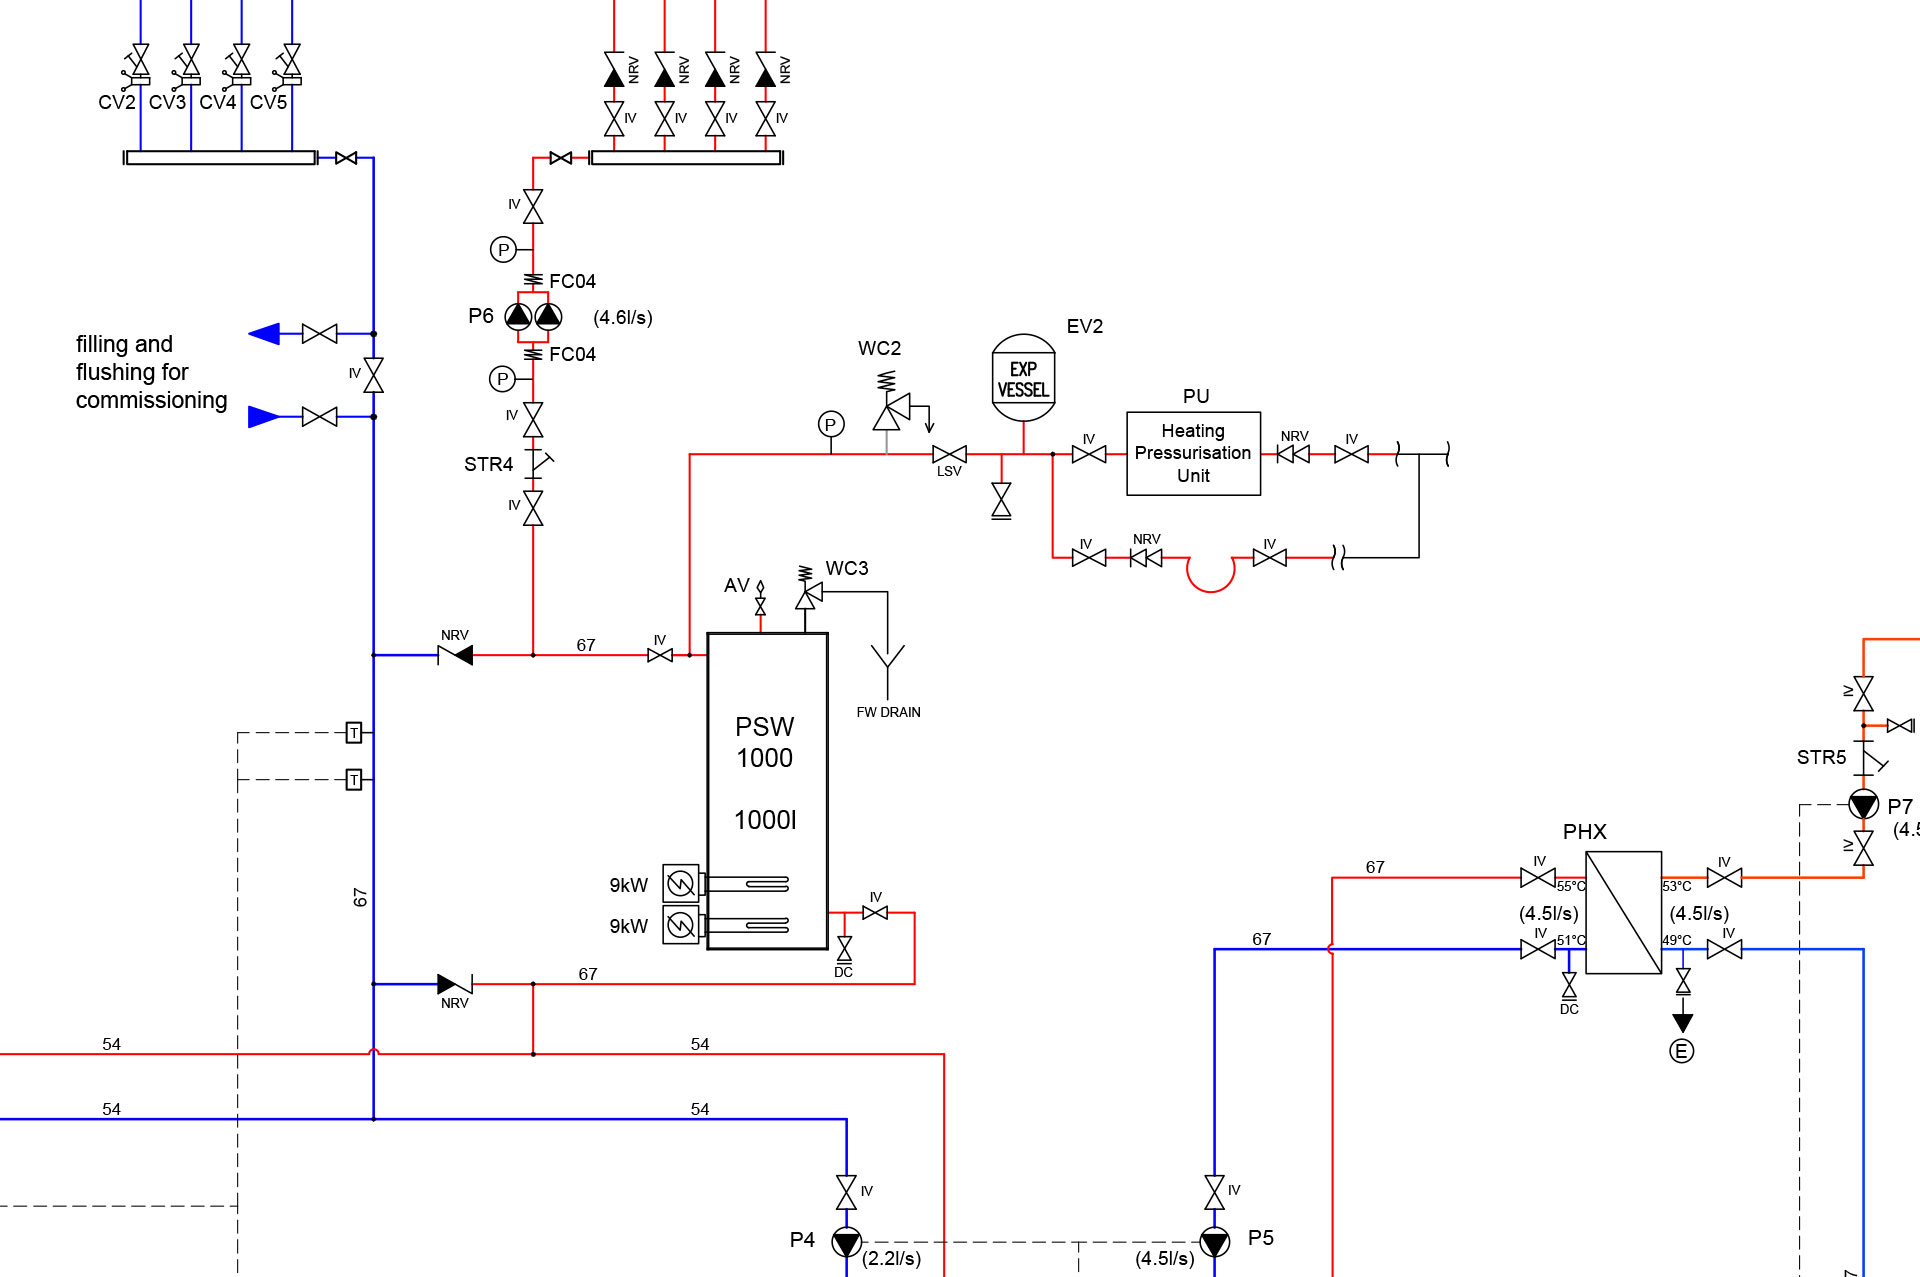 mechanical-schematic-for-large-scale-ground-source-heat-pump-installation